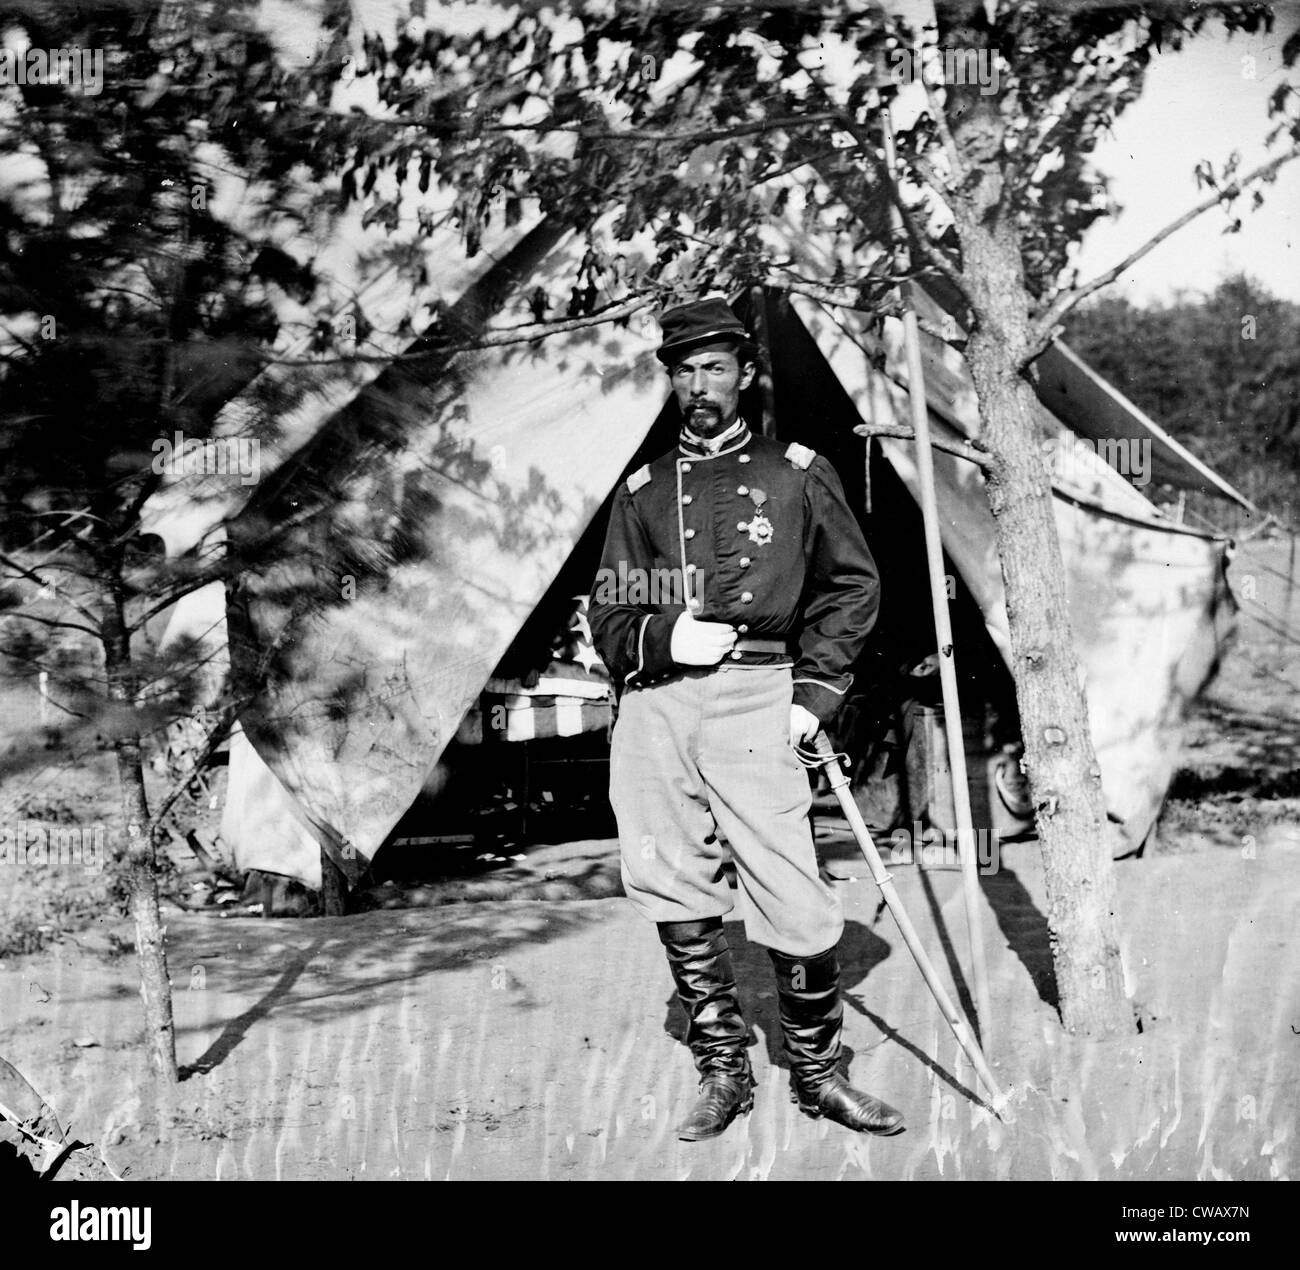 The Civil War, Bull Run, Virginia (vicinity), Col. Alfred Duffie, 1st Rhode Island Cavalry, from glass negative, - Stock Image